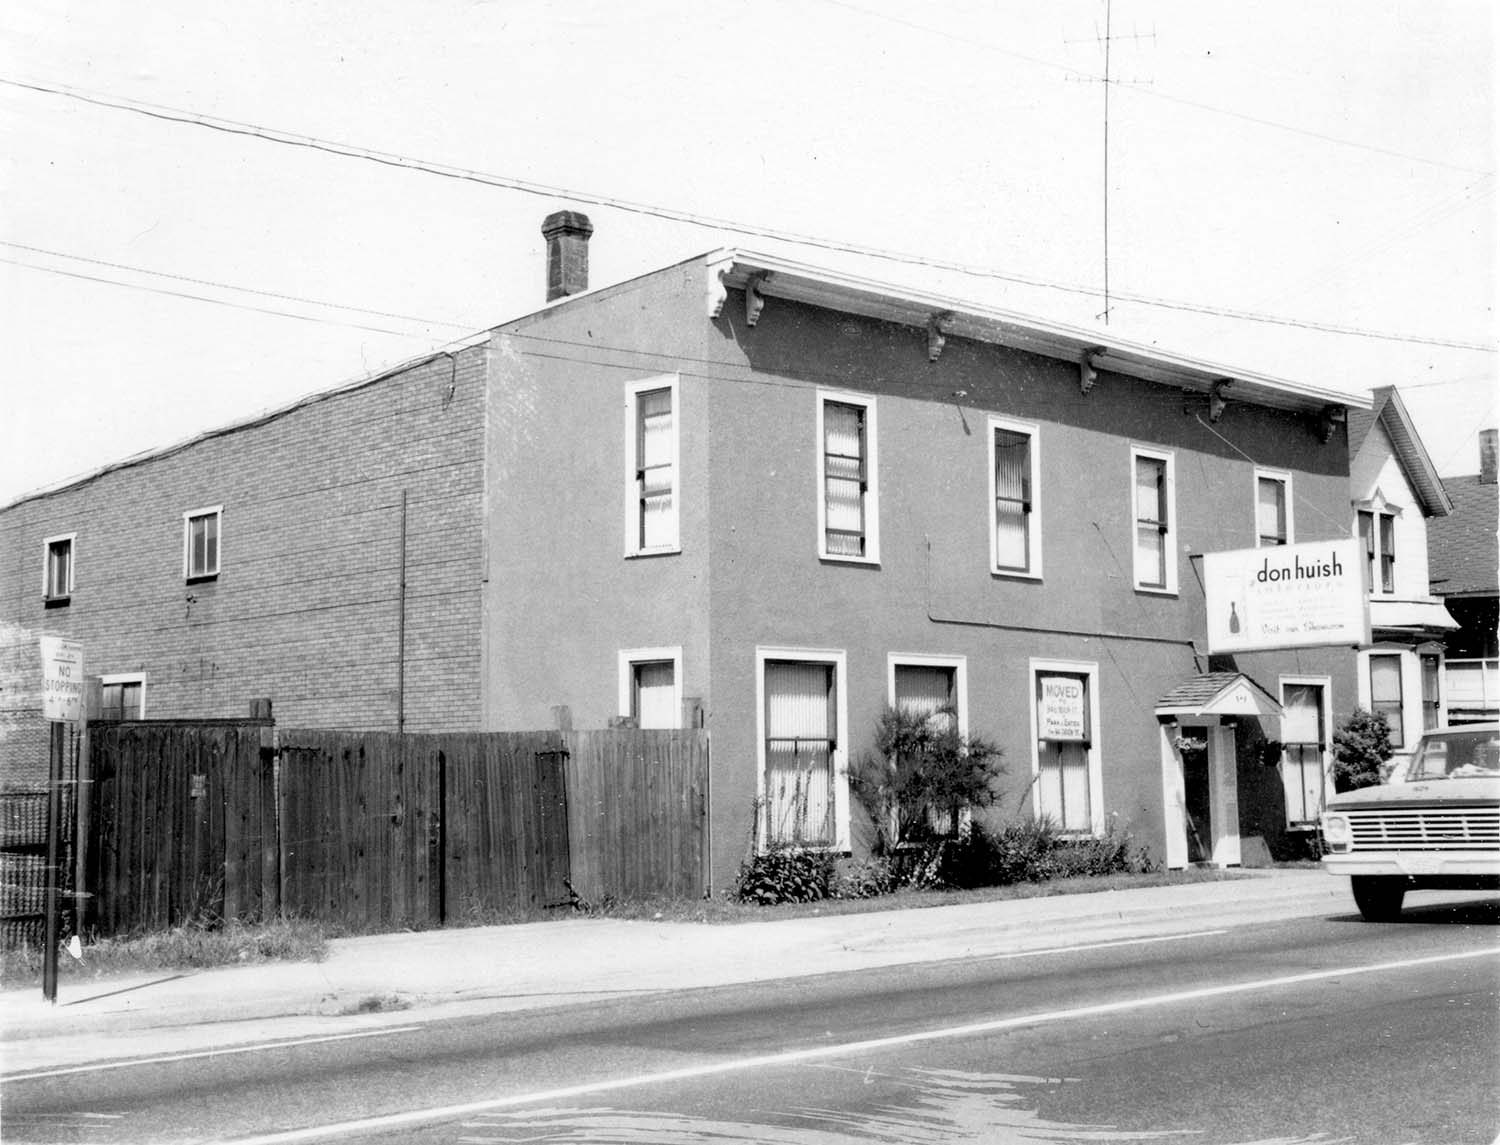 249 Prior Street, front, 1968. Photograph shows Don Huish Interiors sign.Reference code COV-S168-: CVA 203-22